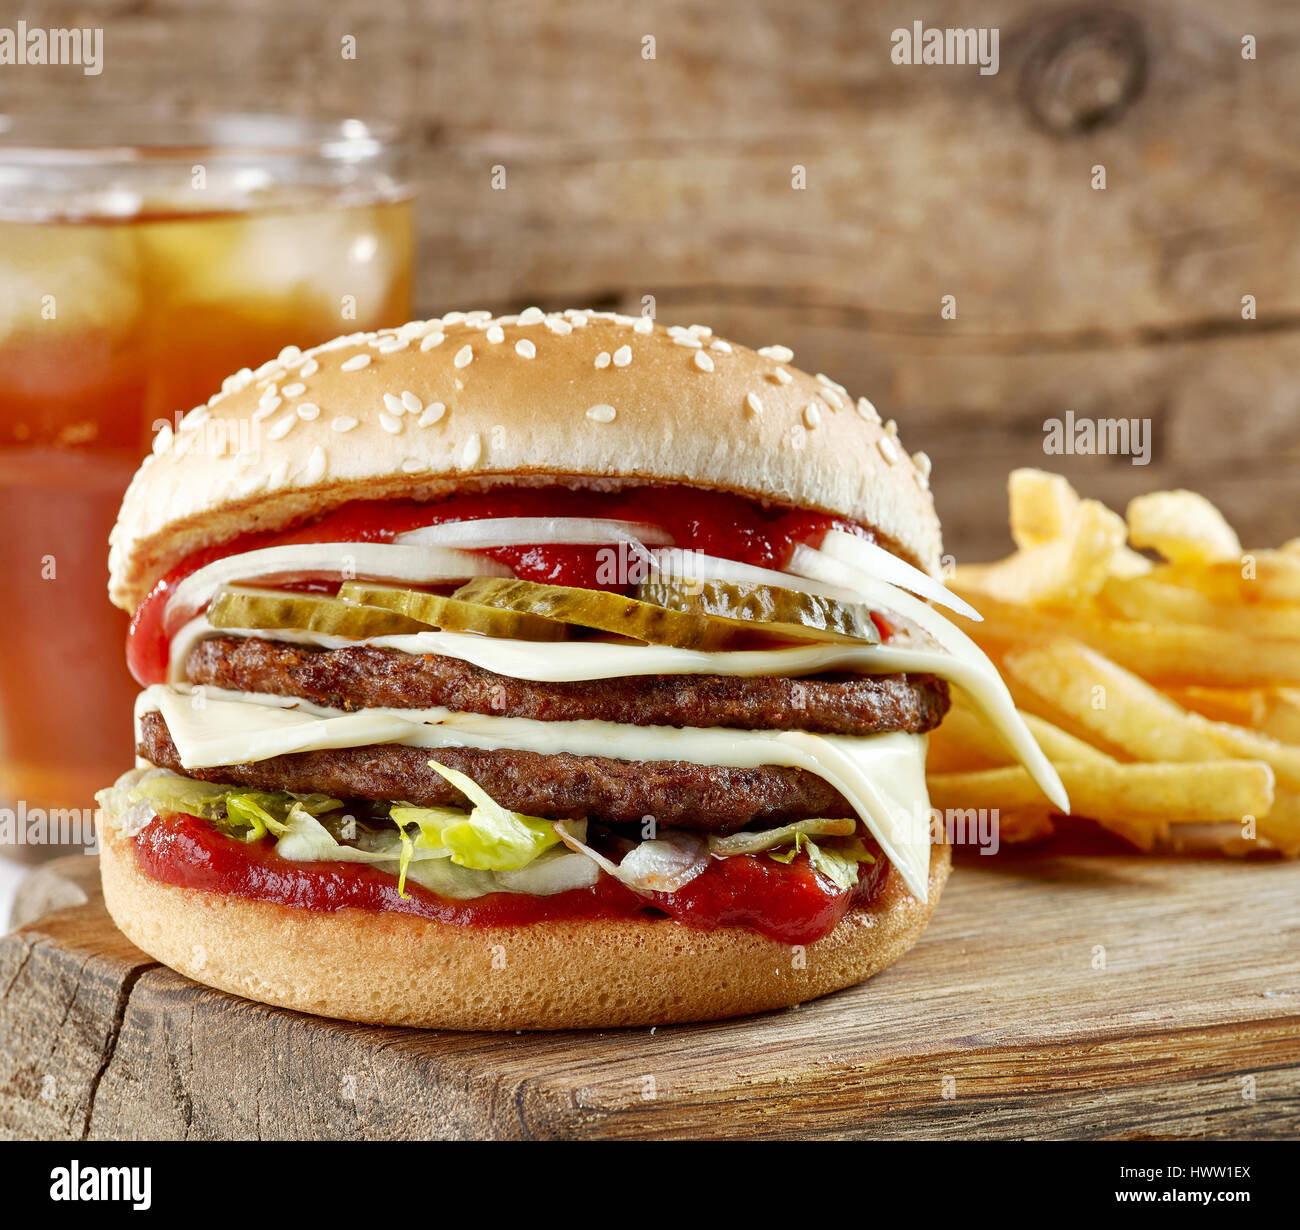 fresh tasty burger and potatoes on wooden cutting board - Stock Image